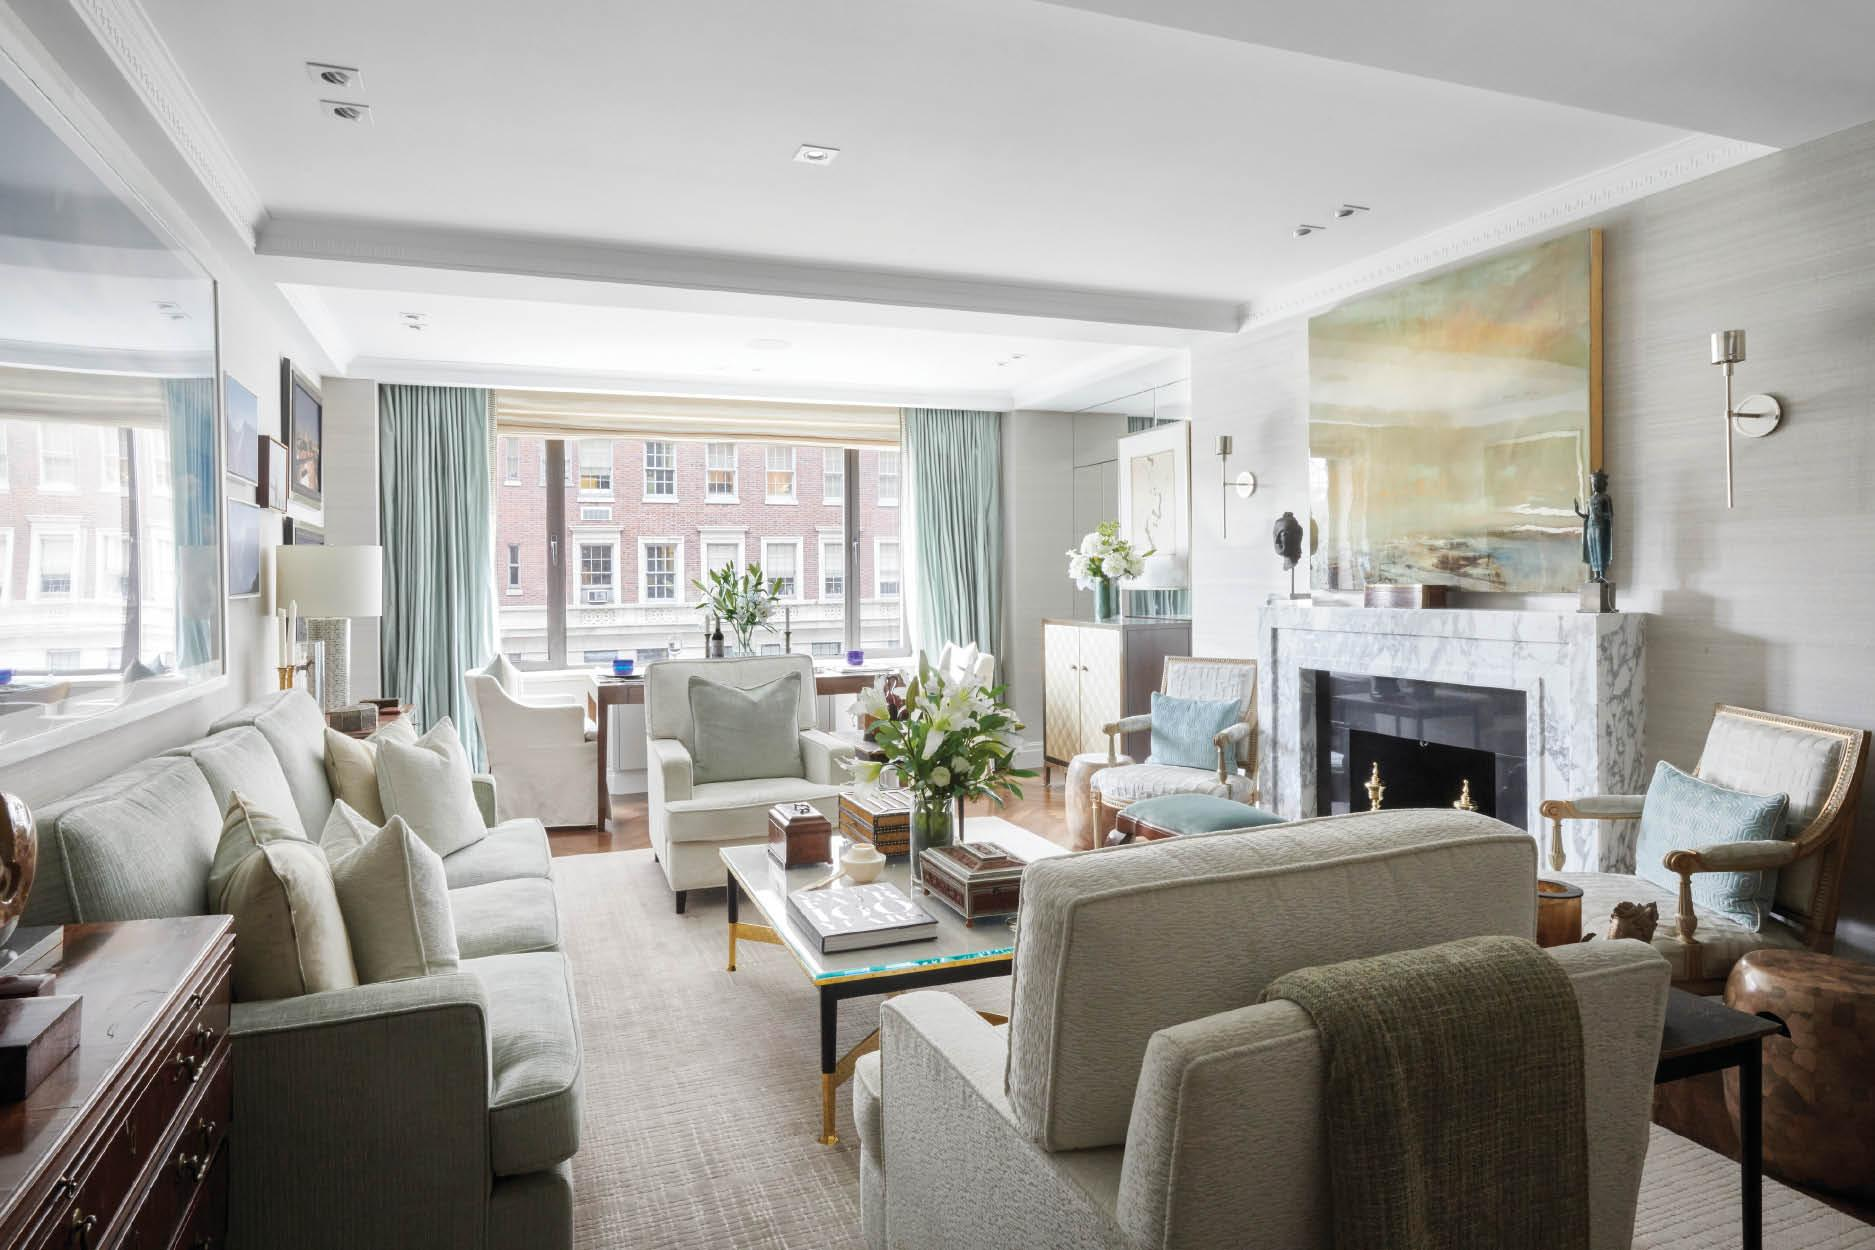 Sumptuous Textiles and Art Weave the Fabric of this Charming New York Home